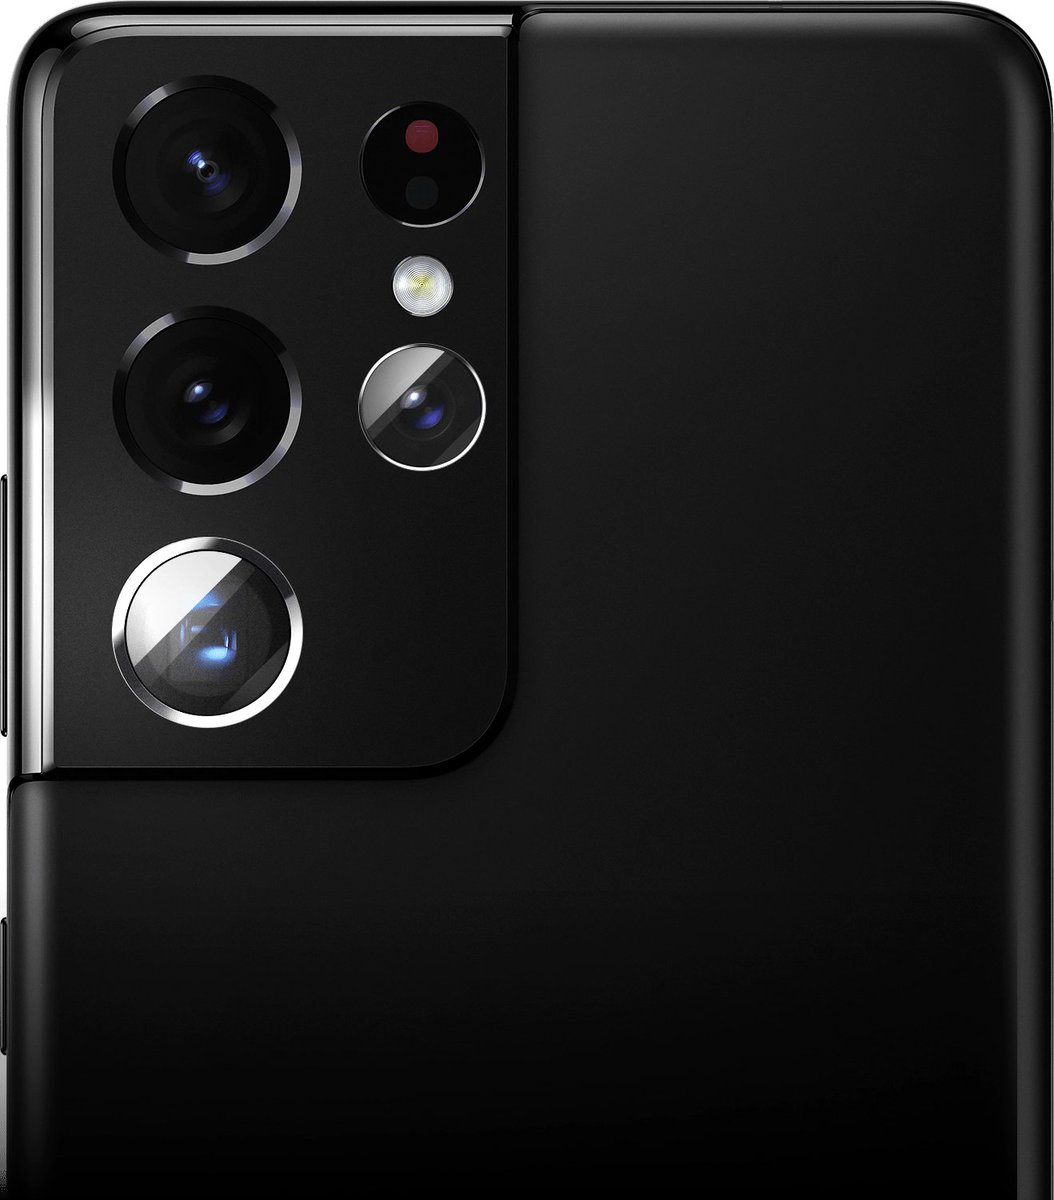 Designed to be epic in every way, with a revolutionary camera experience and powerful performance. Introducing the new #Samsung #GalaxyS21 Ultra. Learn more: